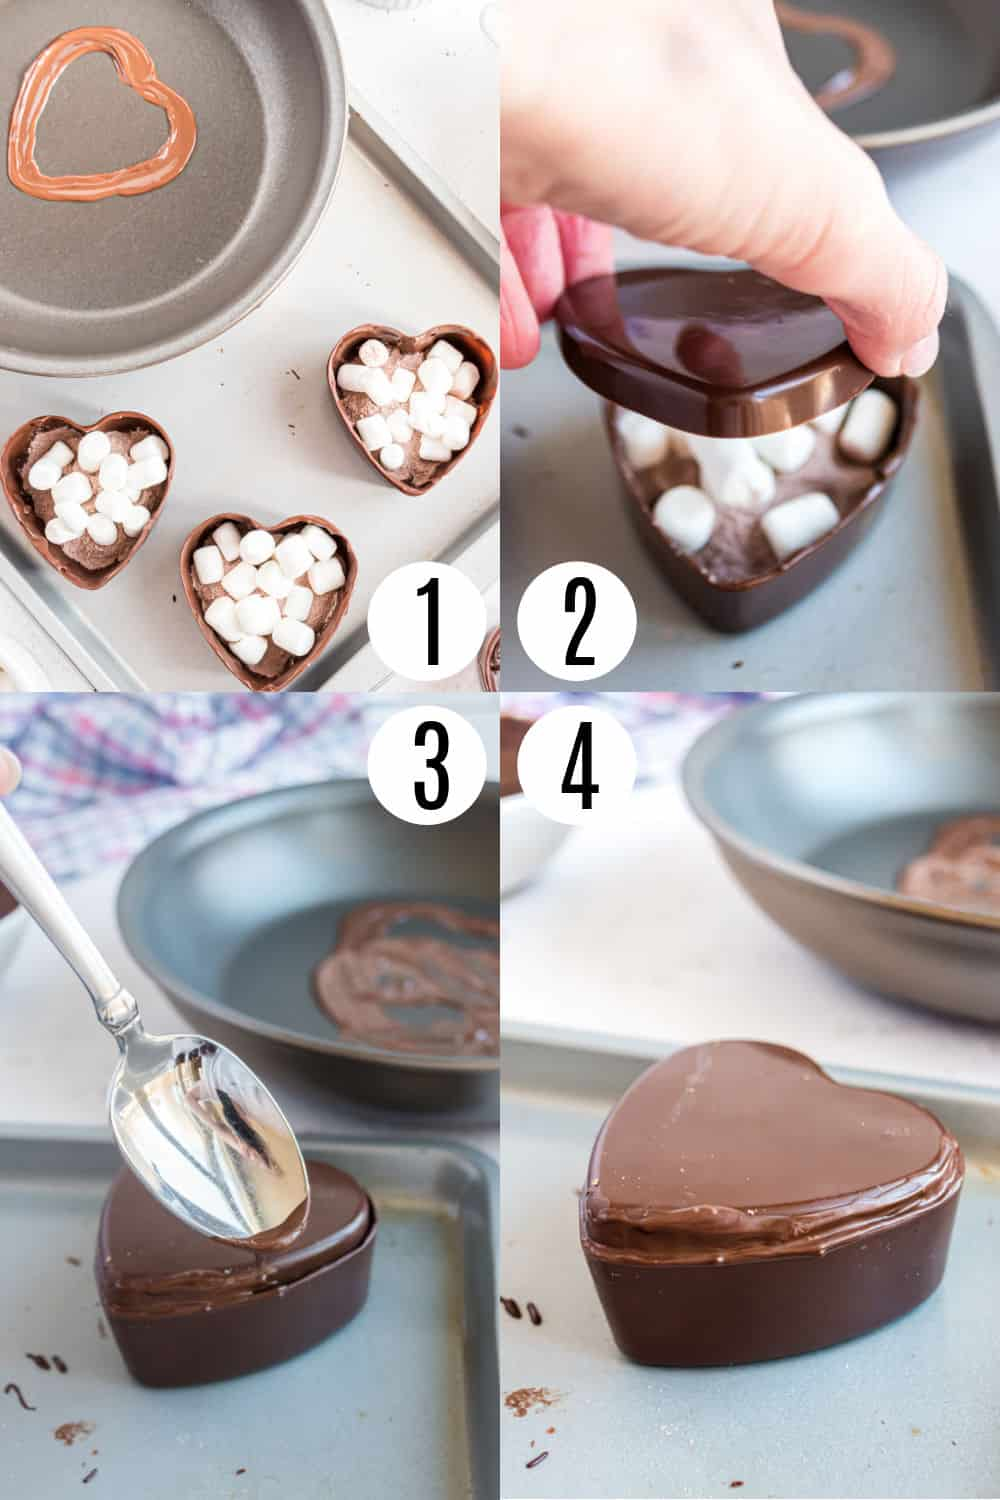 Step by step photos showing how to fill heart shaped hot cocoa molds.